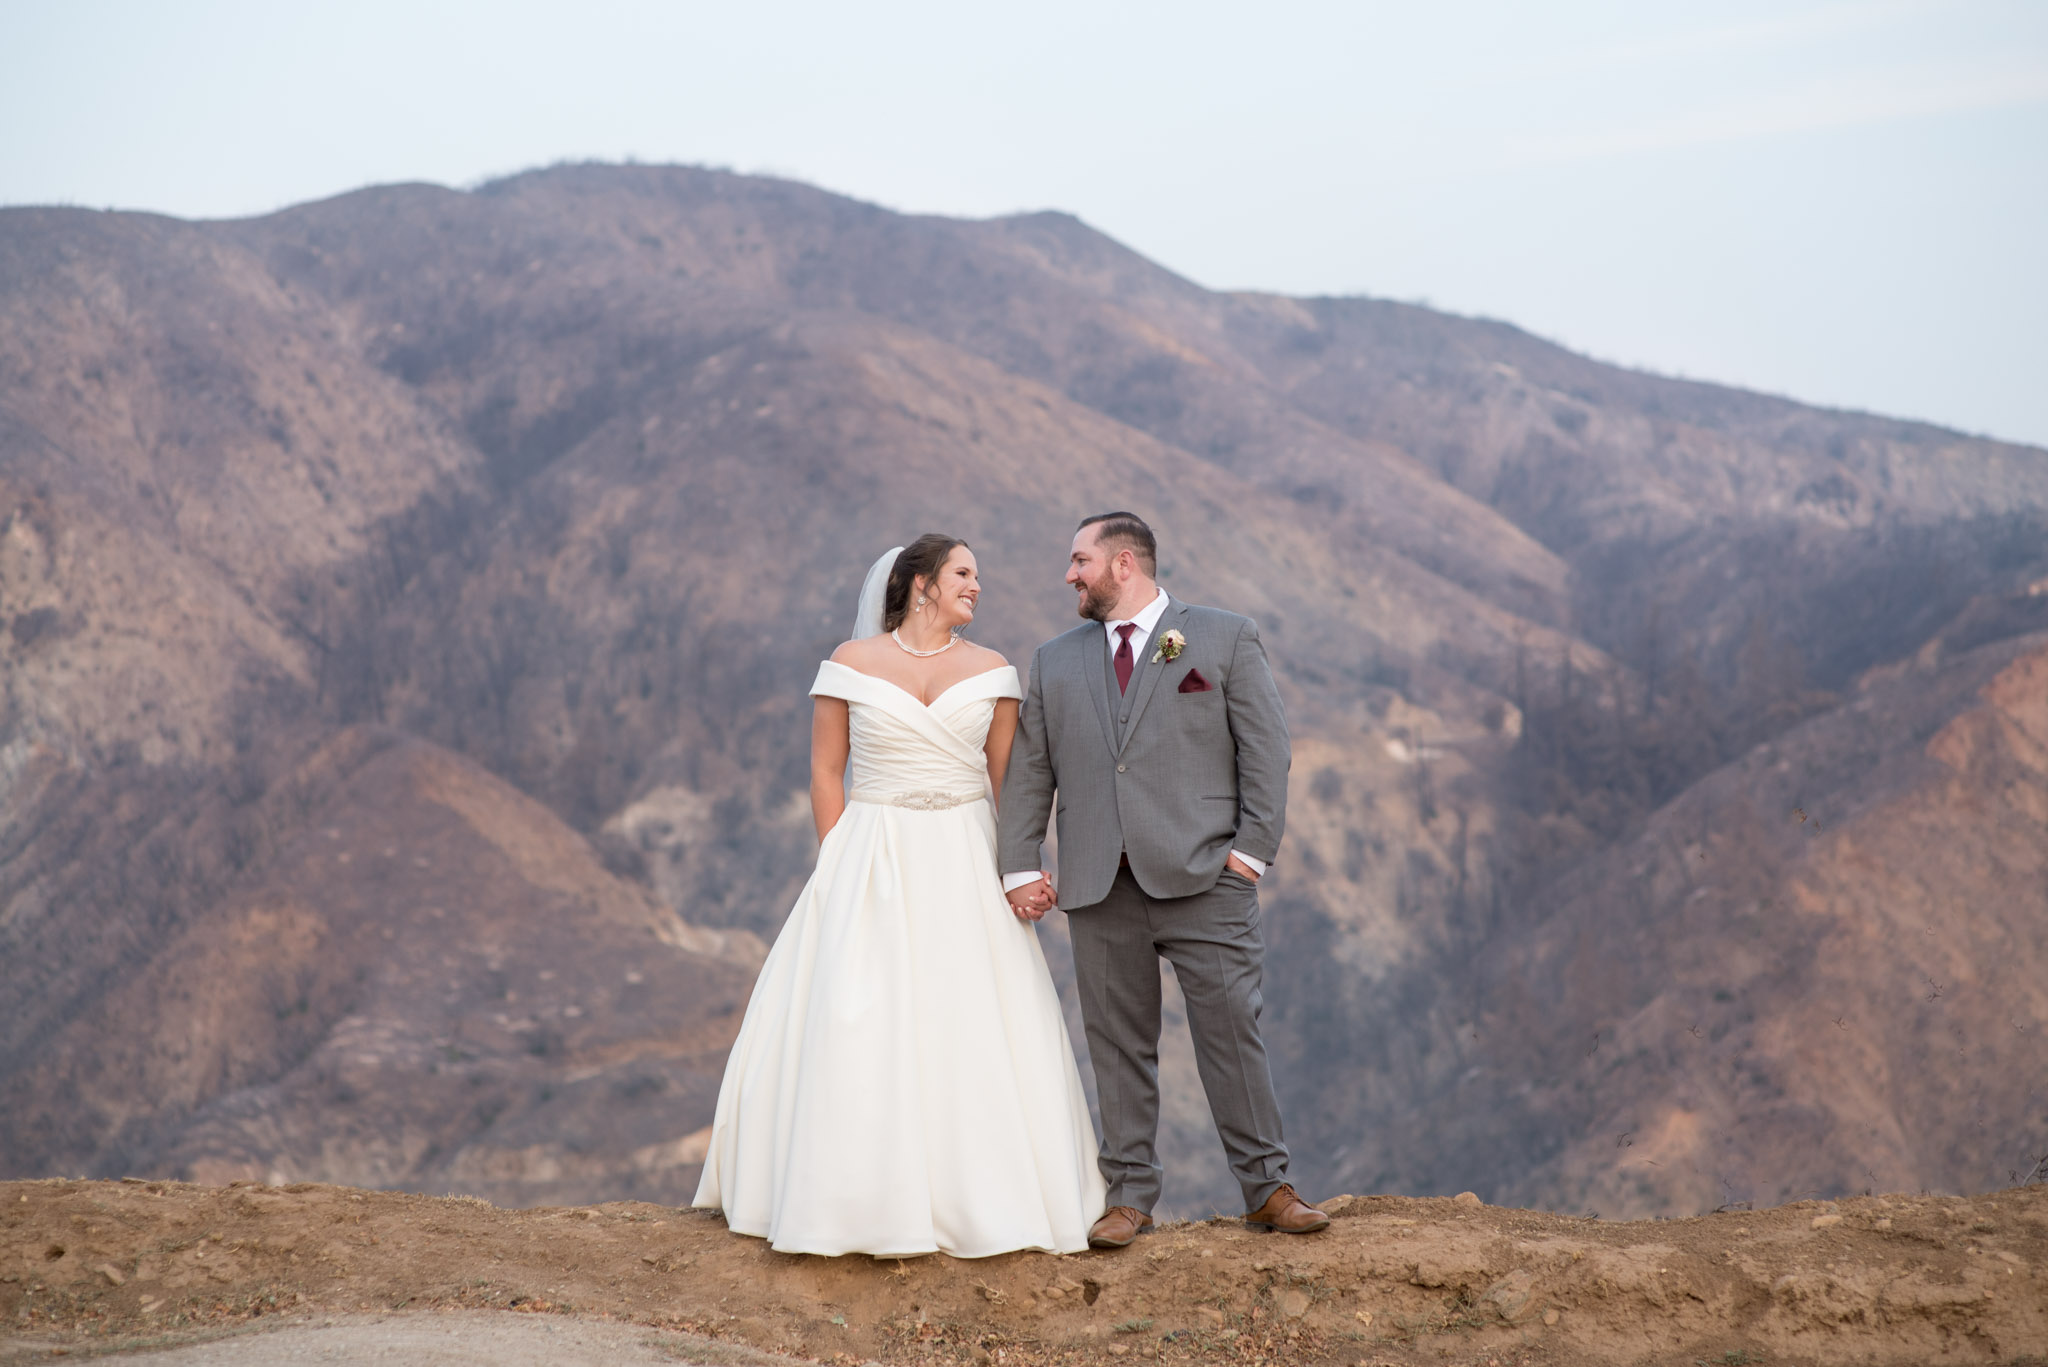 Bride and groom take portraits in front of San Bernardino Mountains at Mile High Oaks wedding